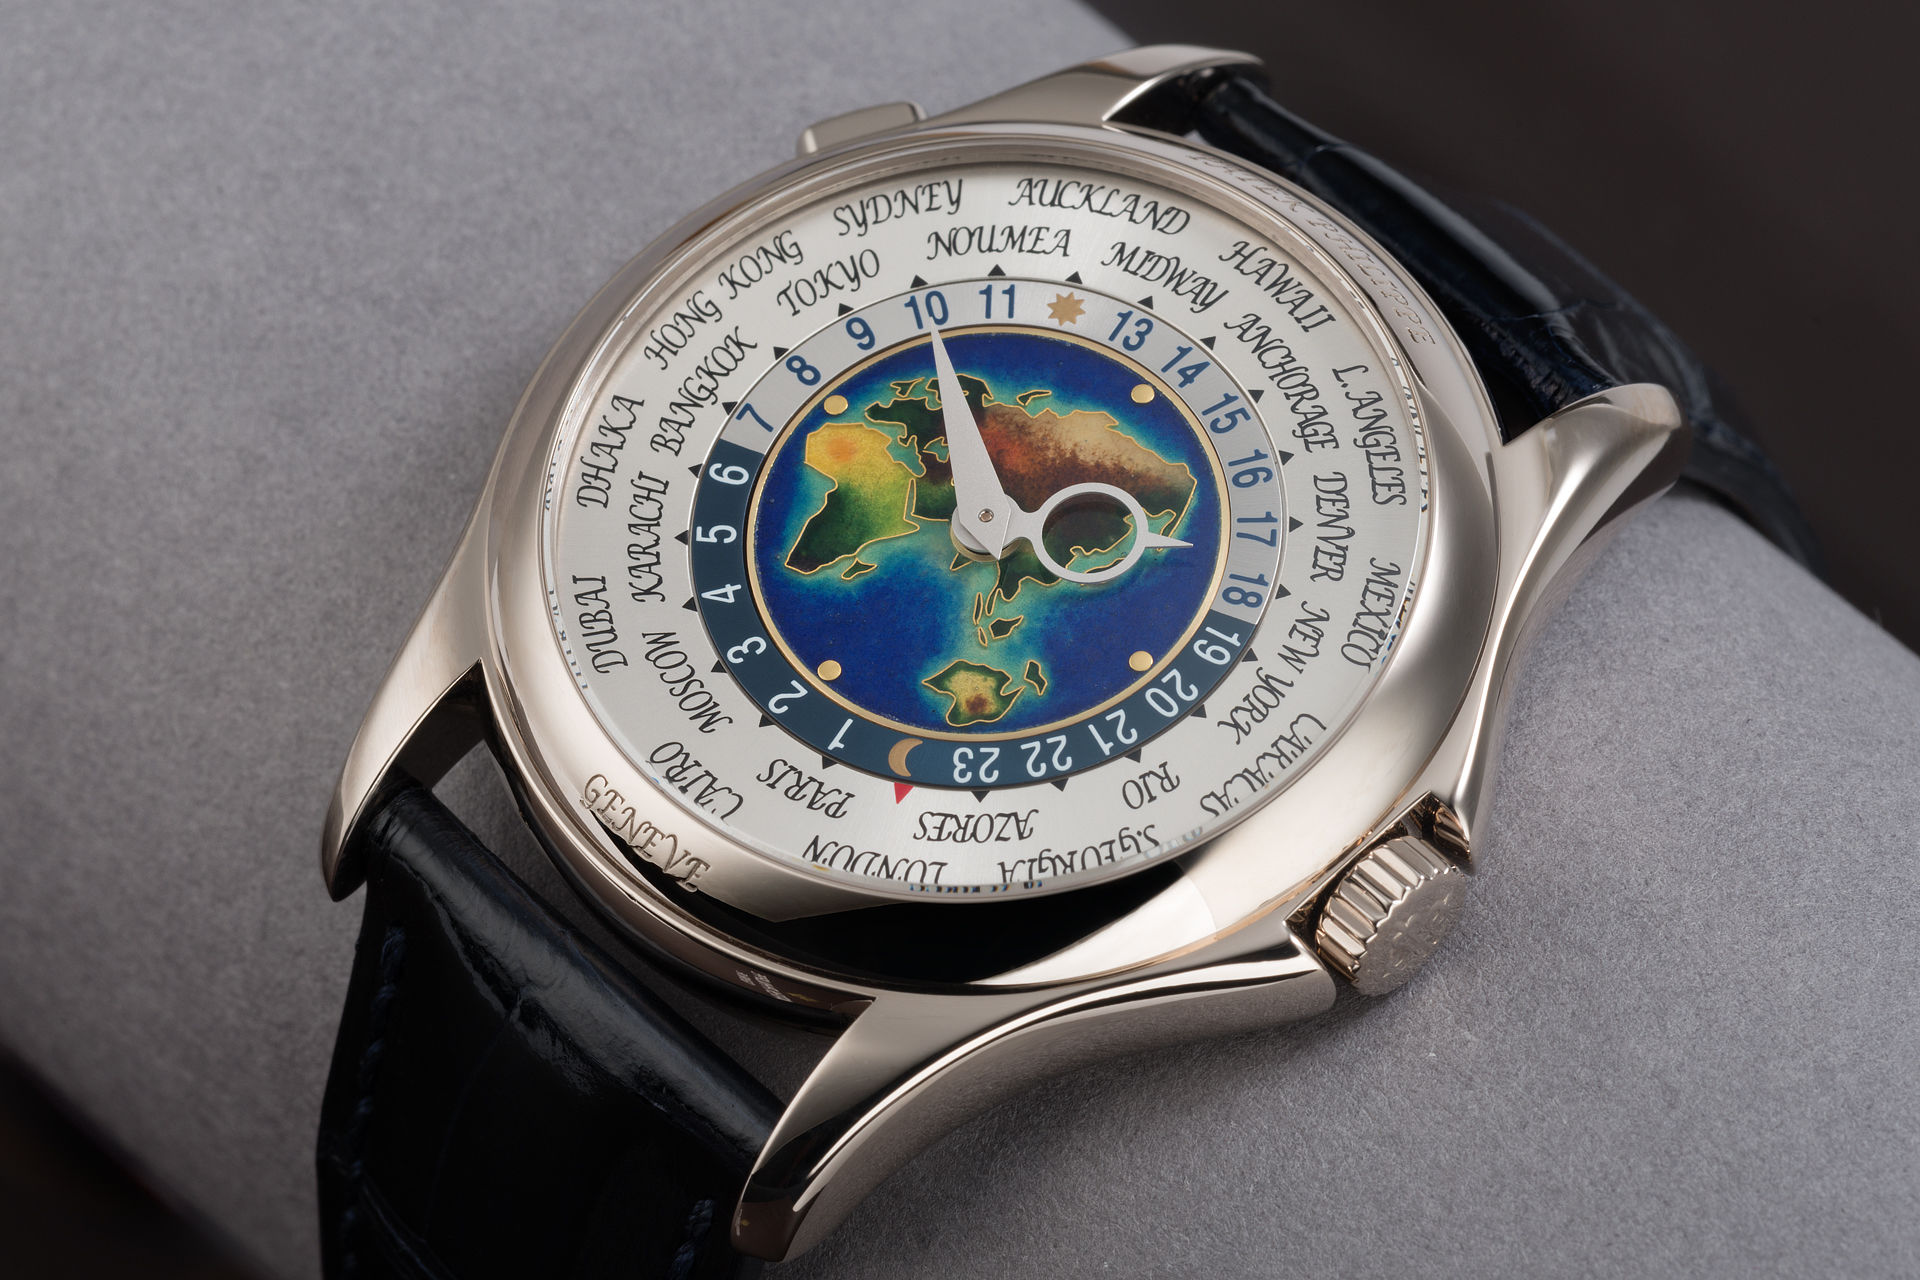 ref 5131G | 1st Series Enamel Dial | Patek Philippe World Time